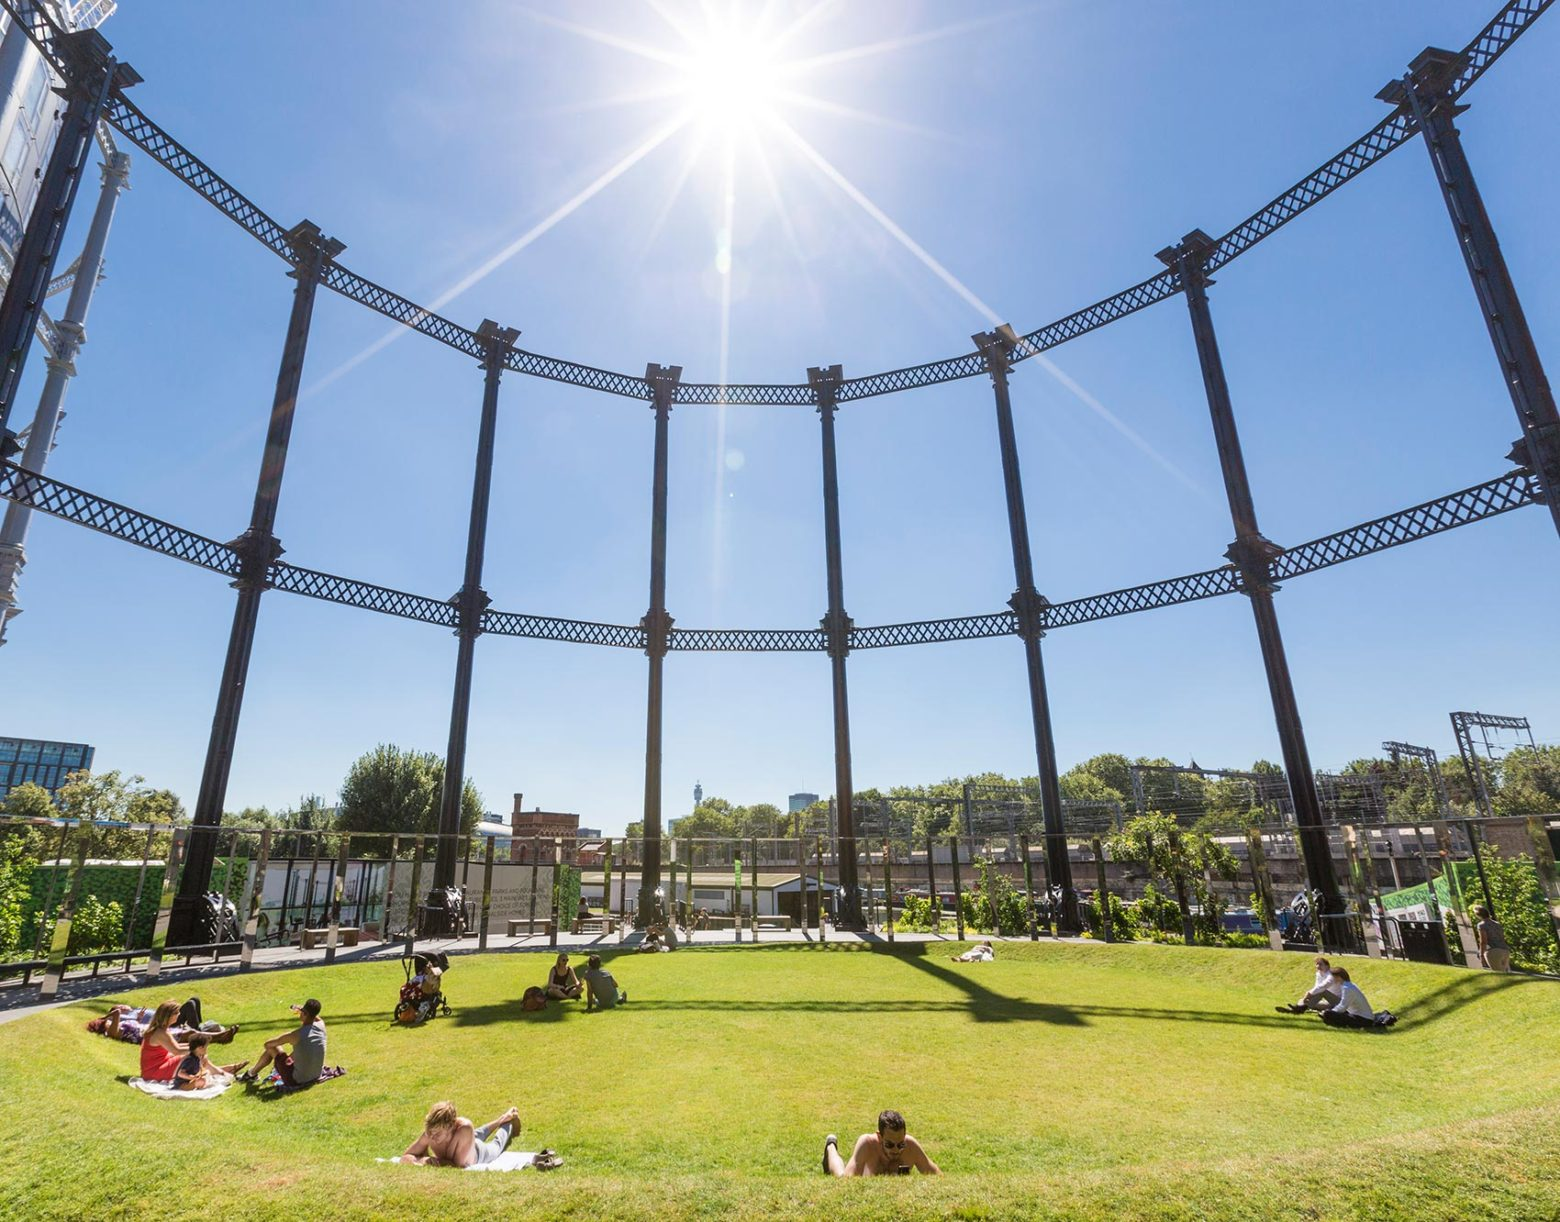 Gasholder Park Commended in Camden Design Awards